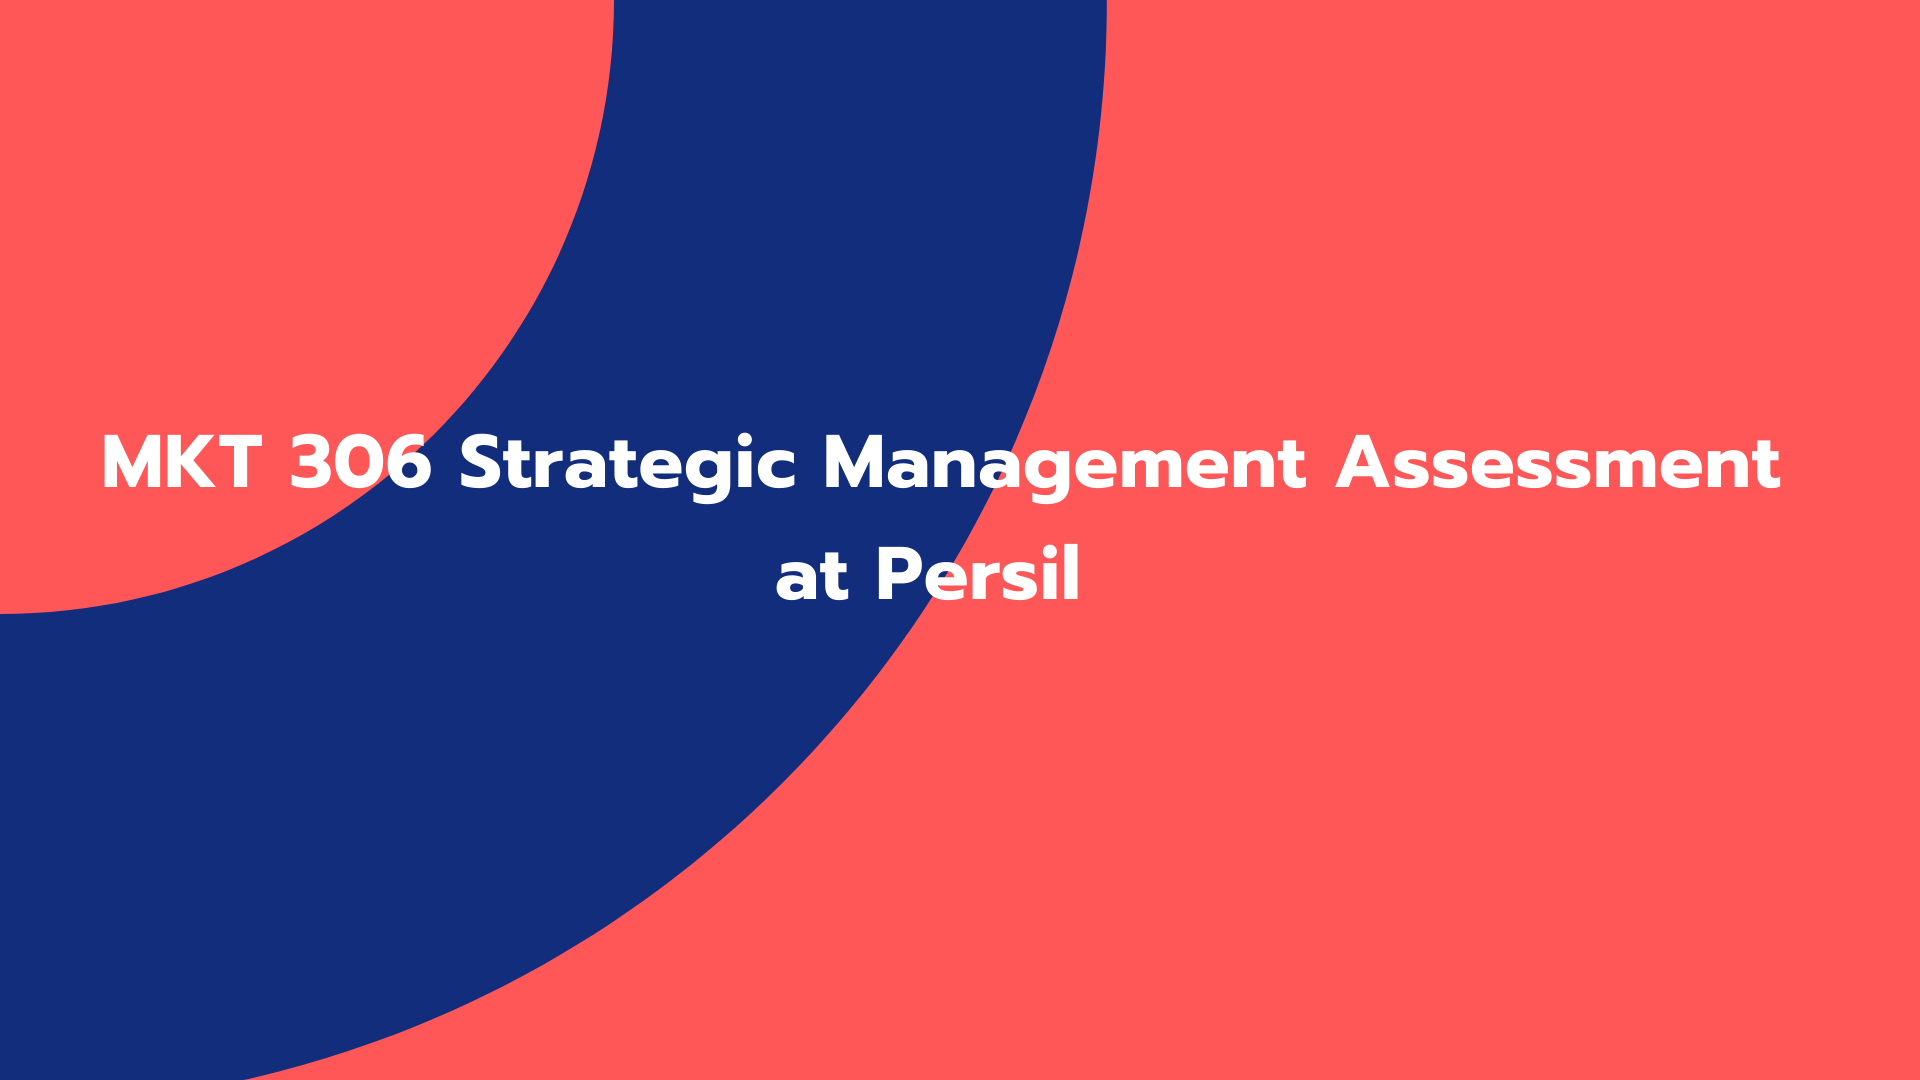 MKT 306 Strategic Management Assessment at Persil